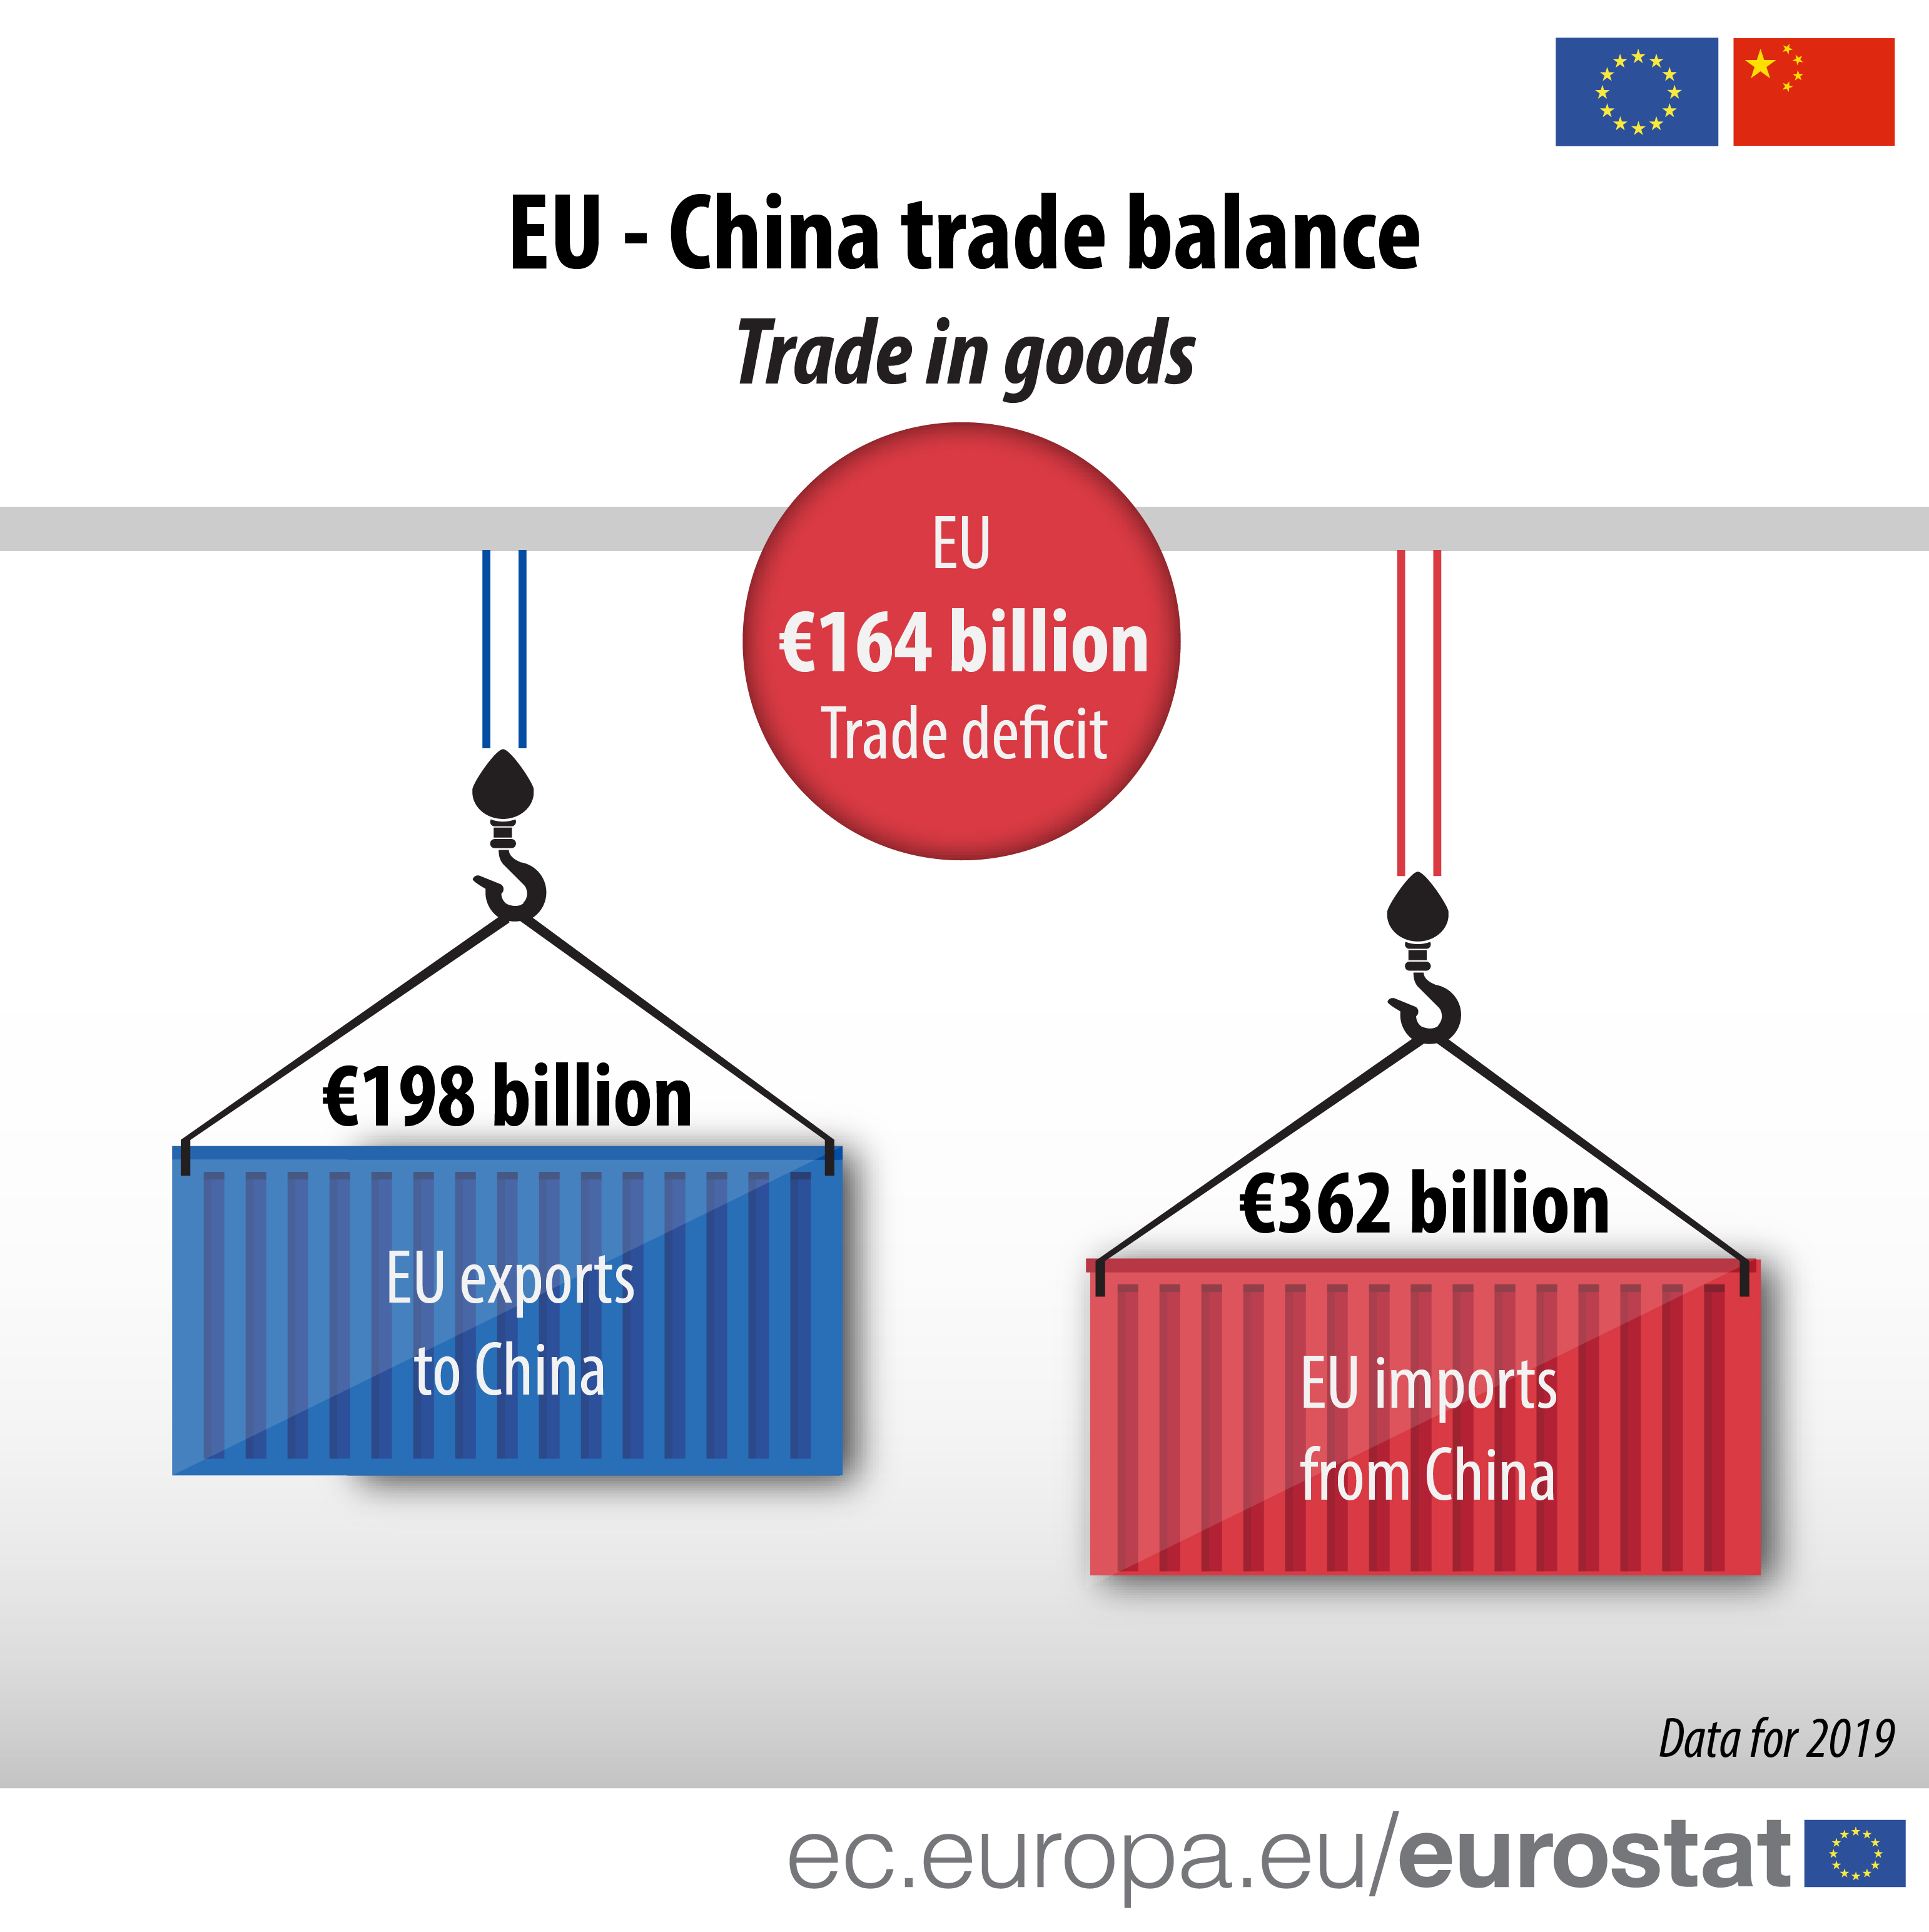 EU - China trade balance Trade in goods